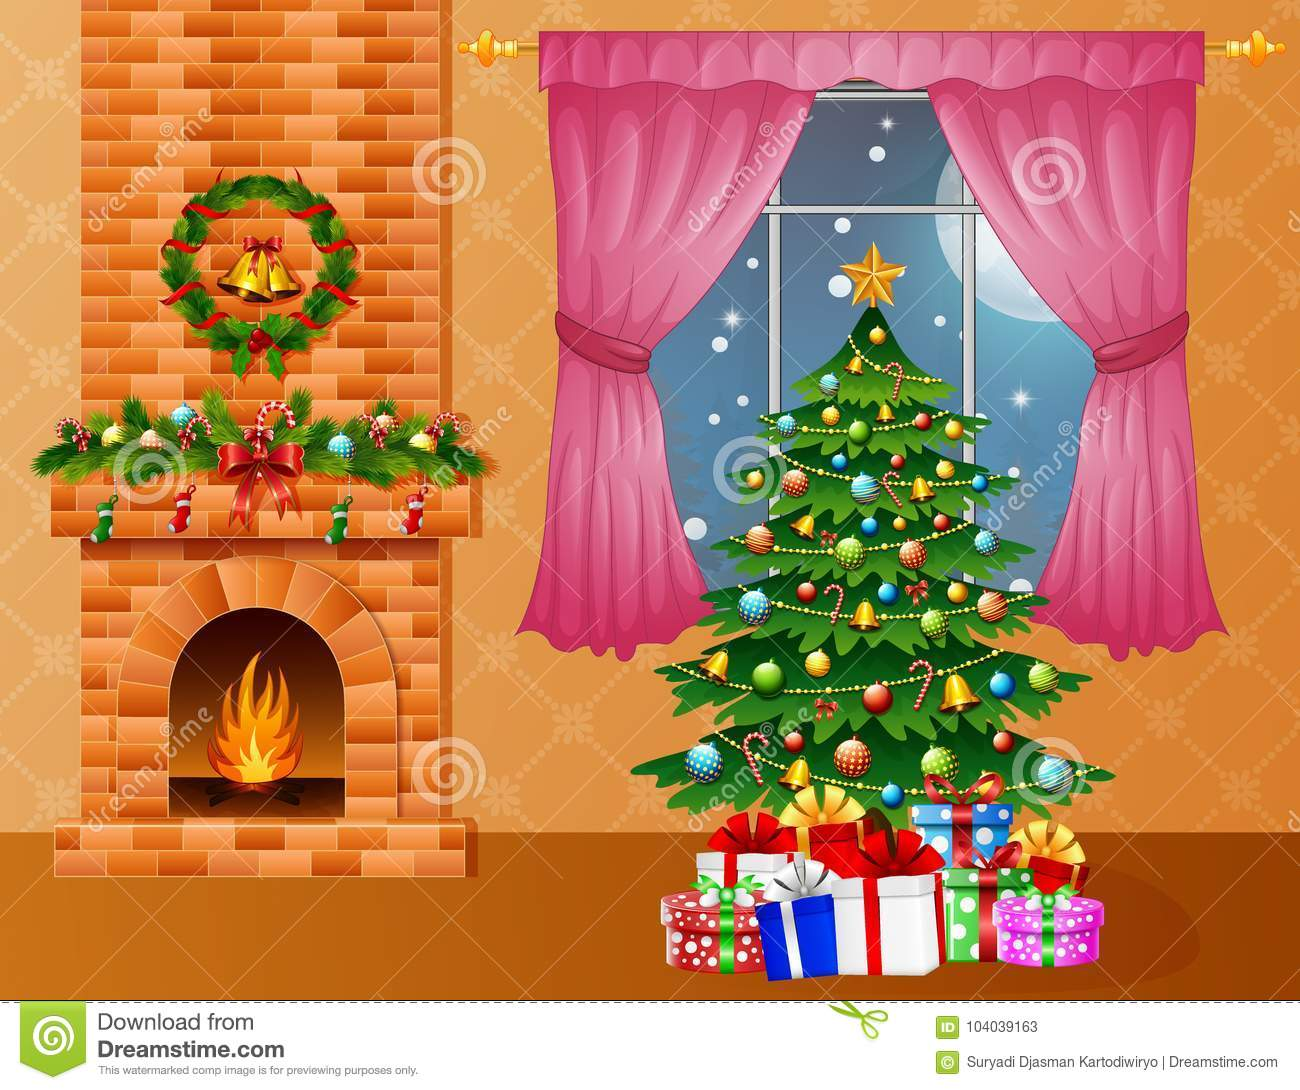 Picture Of Christmas Tree With Presents: Christmas Room Interior With Fireplace, Xmas Tree And